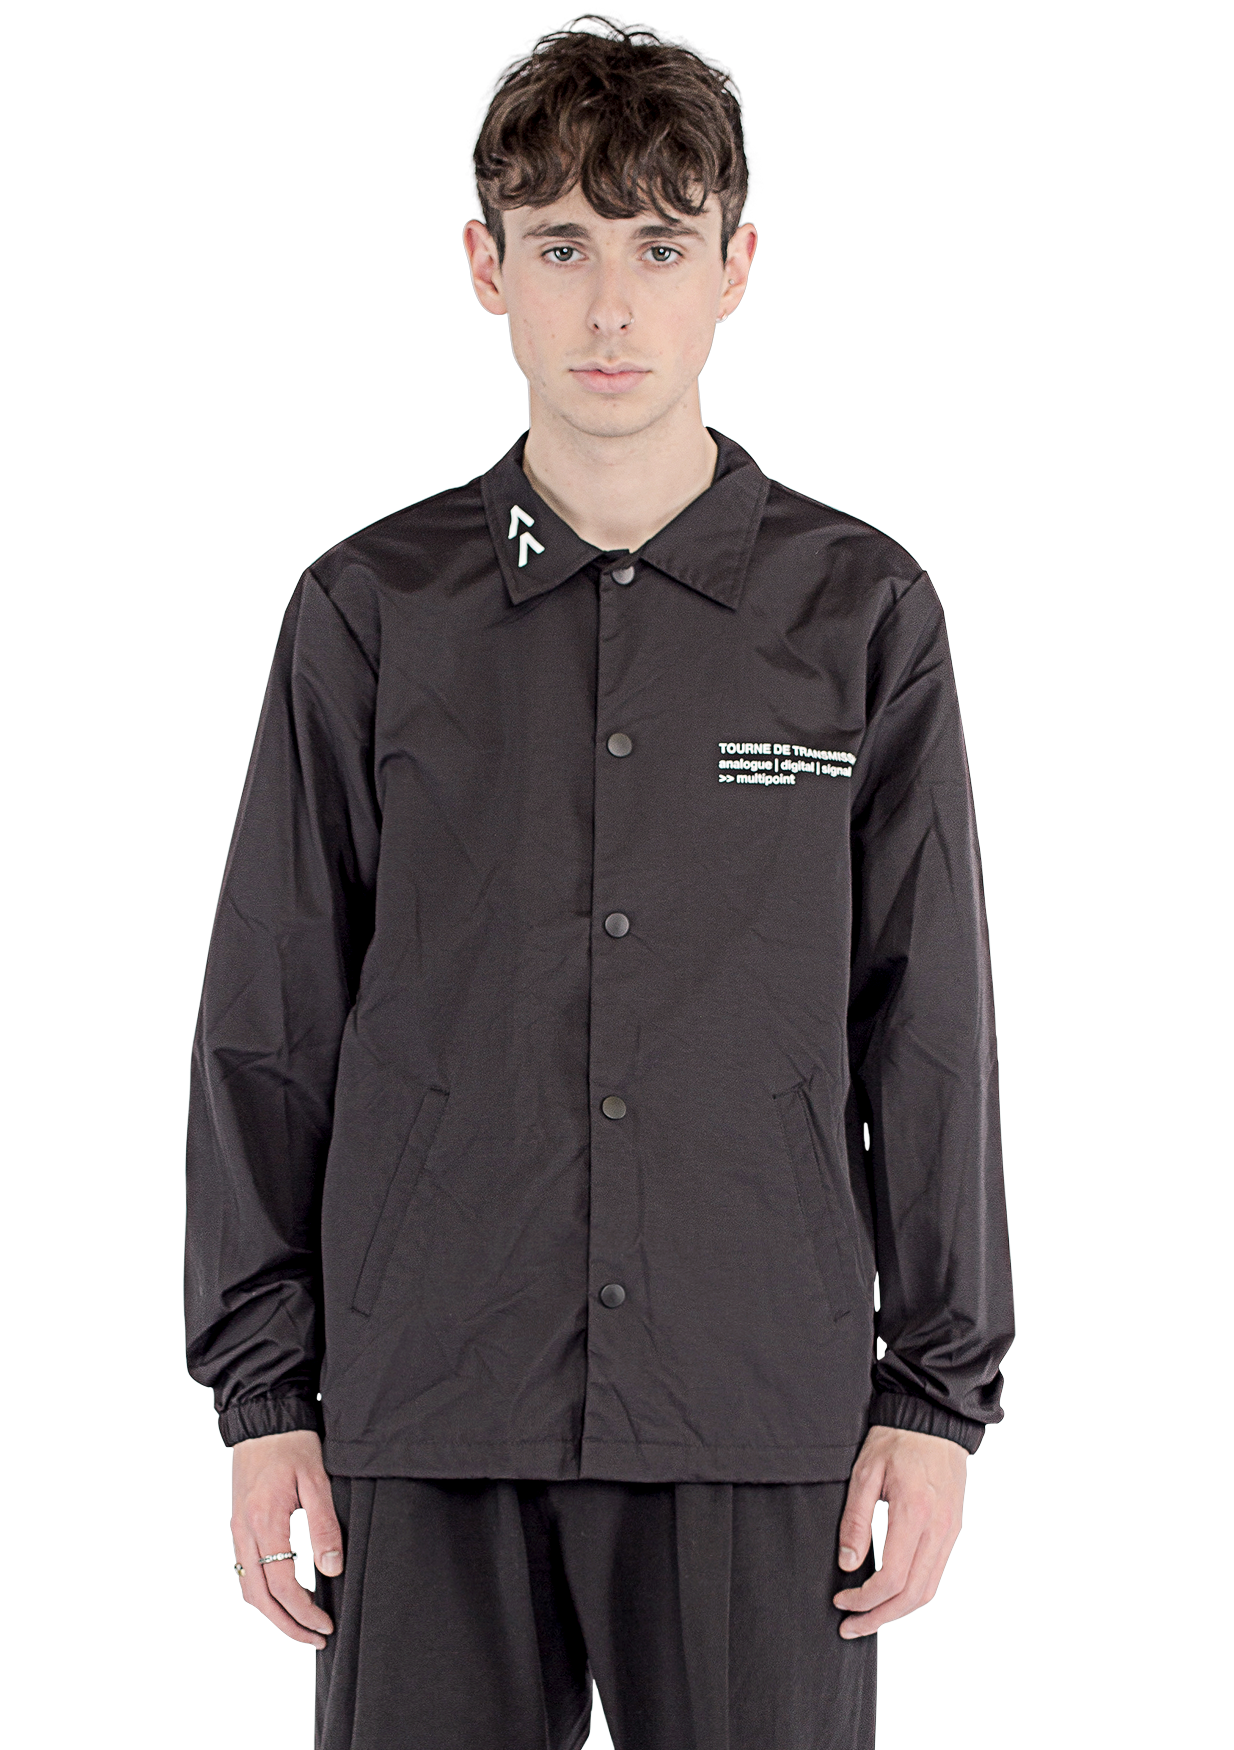 """Multipoint"" Coach jacket - Black / White"